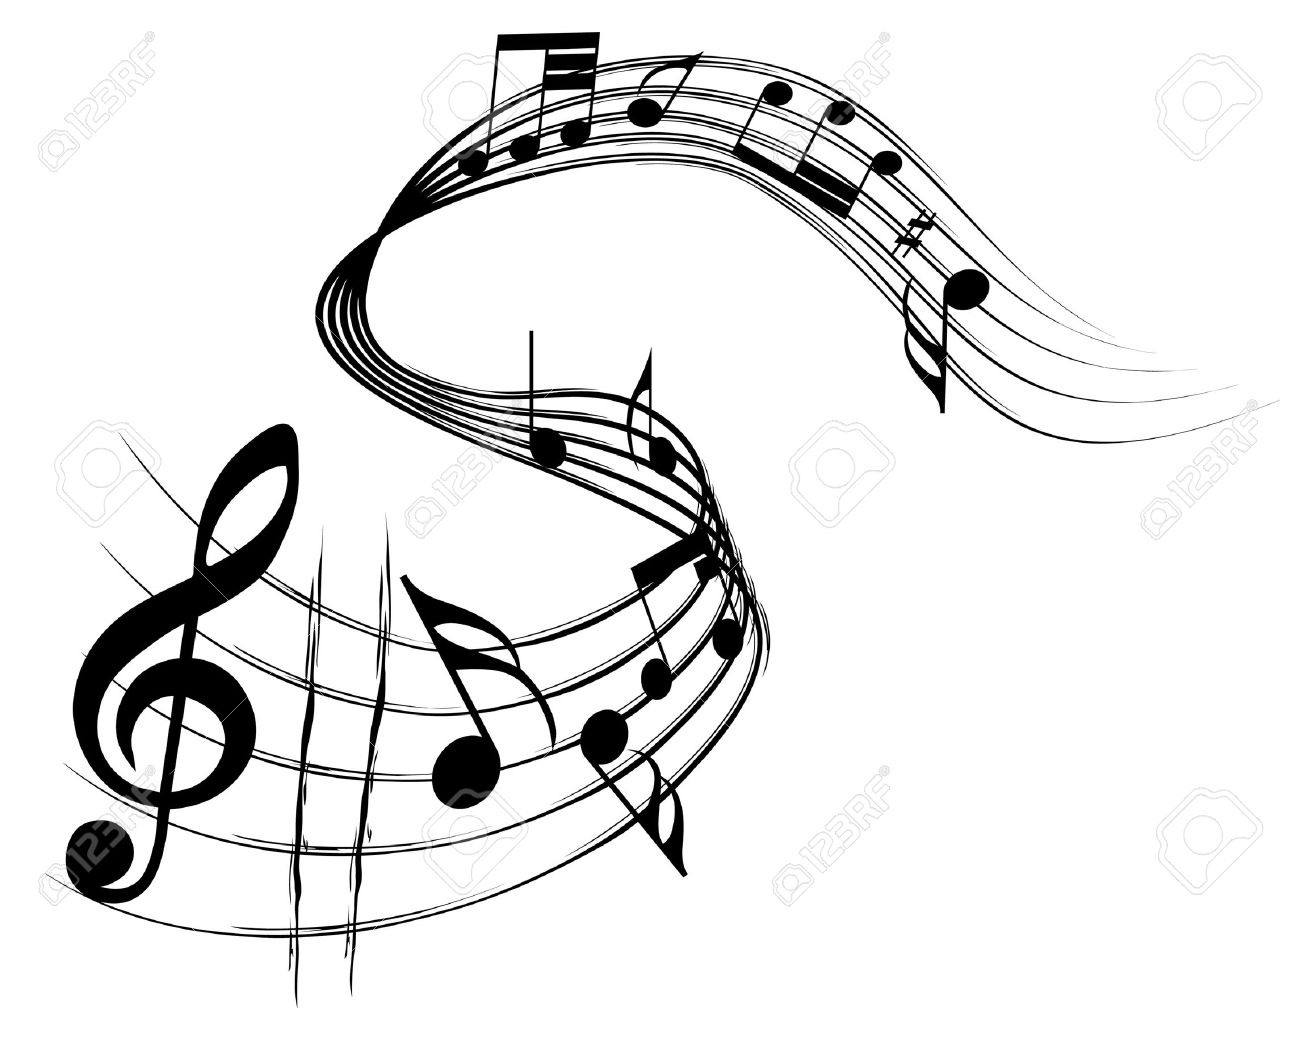 Vector musical notes staff background for design use Stock Vector - 5495396